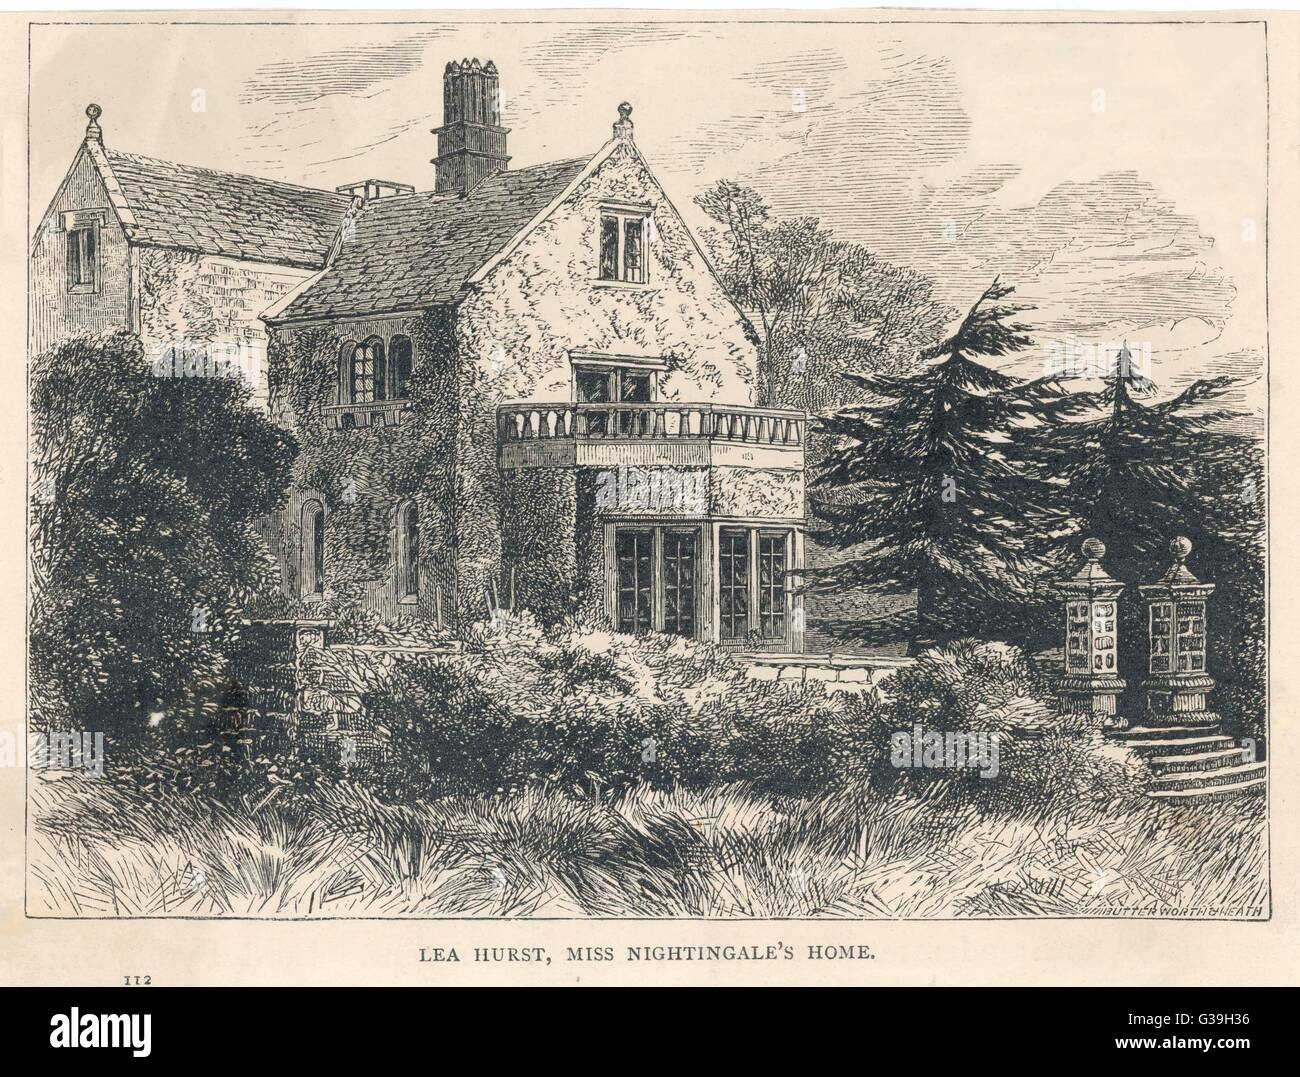 FLORENCE NIGHTINGALE  Her home at Lea Hurst        Date: 1820 - 1910 - Stock Image